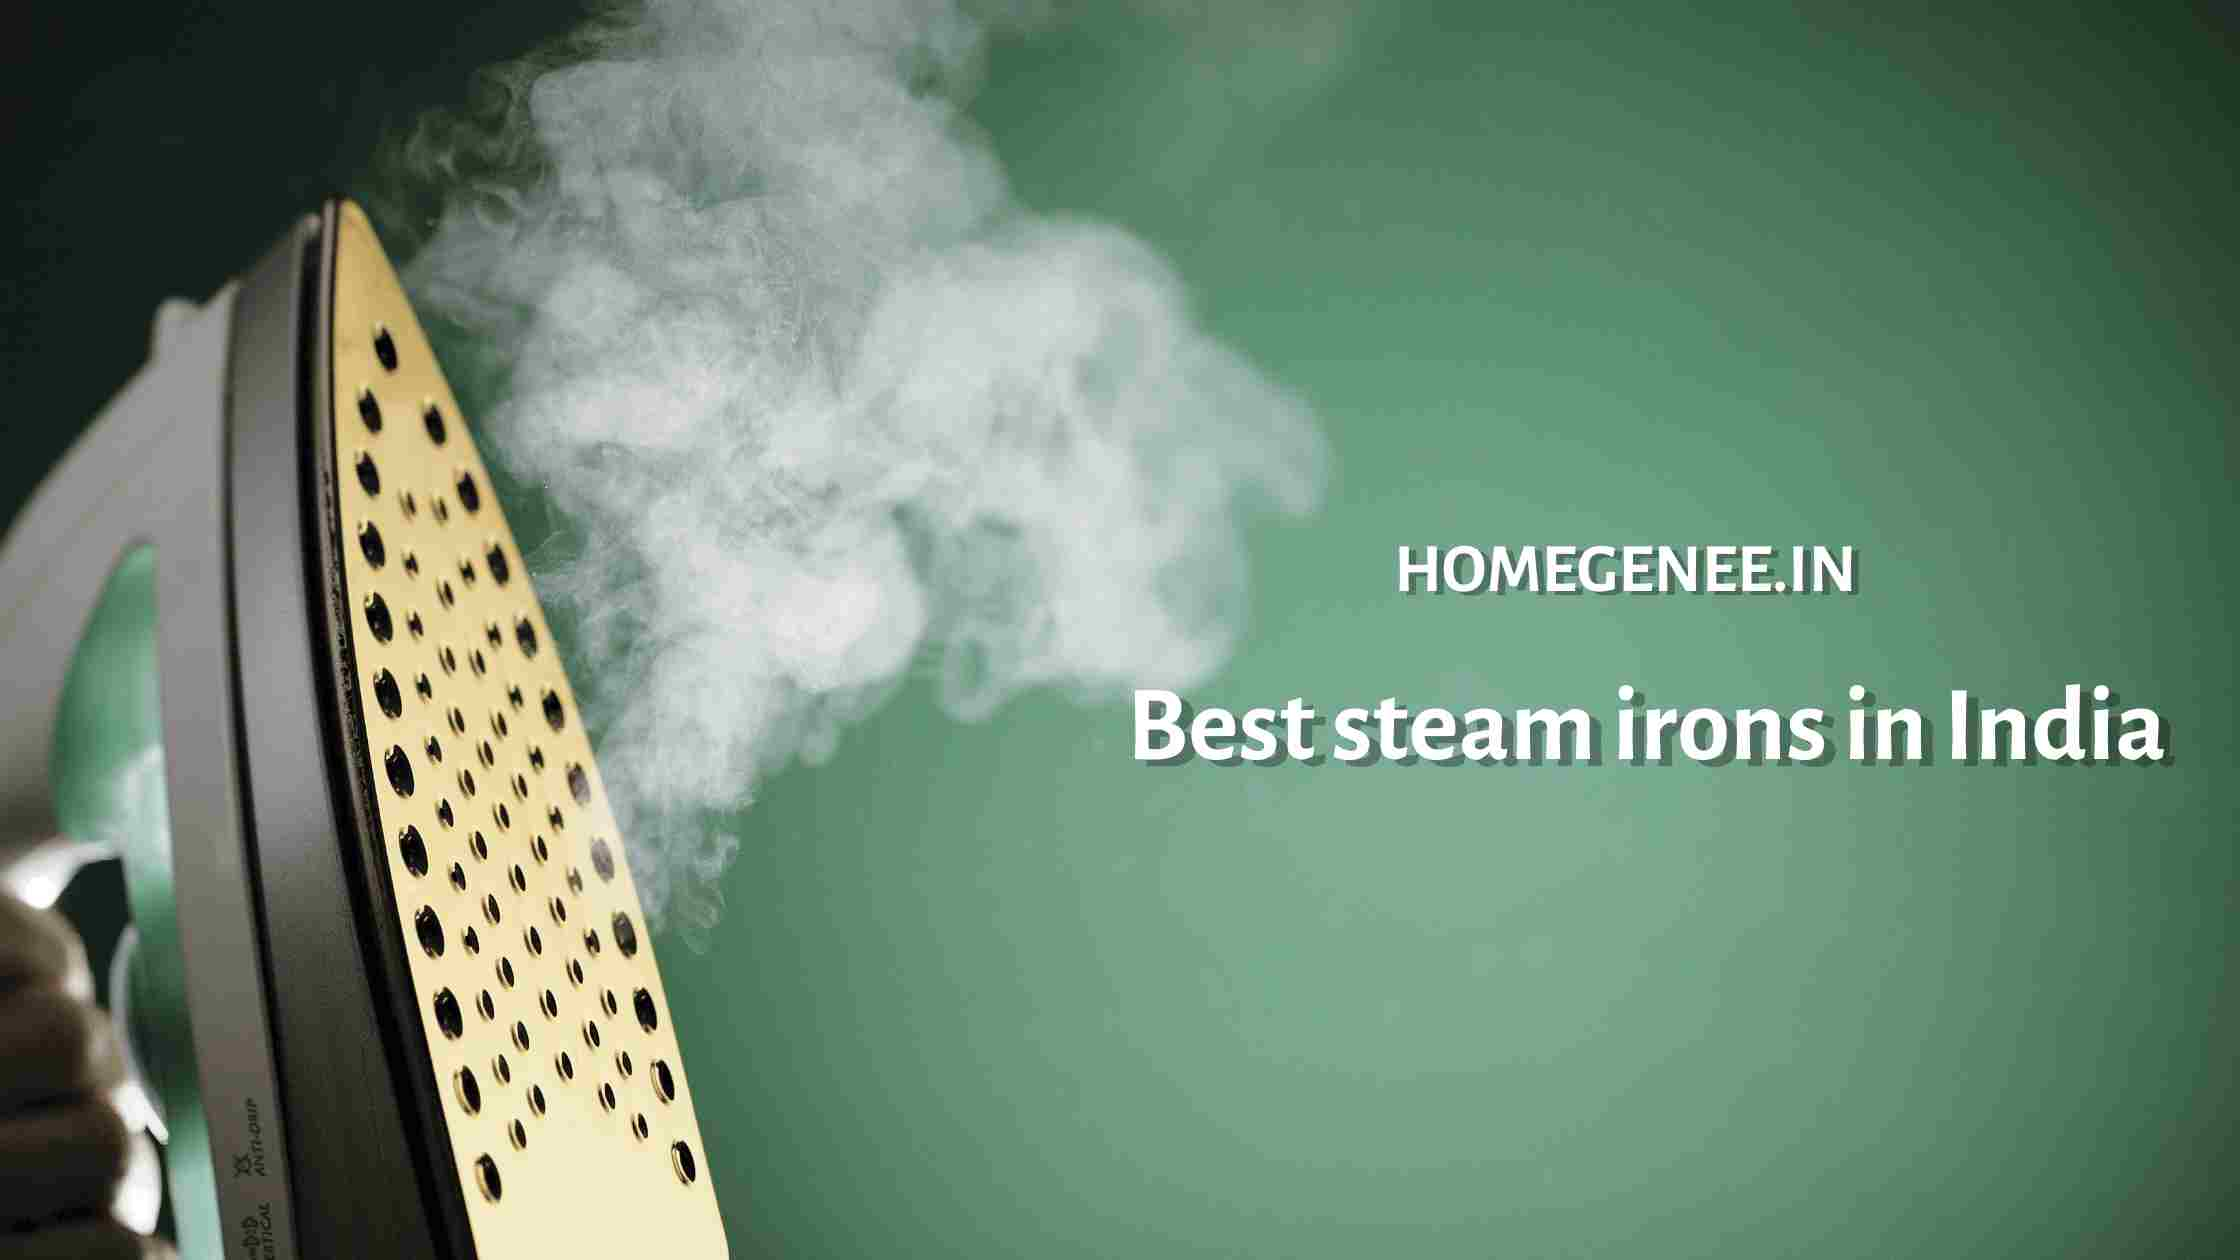 Best steam irons in India 2021